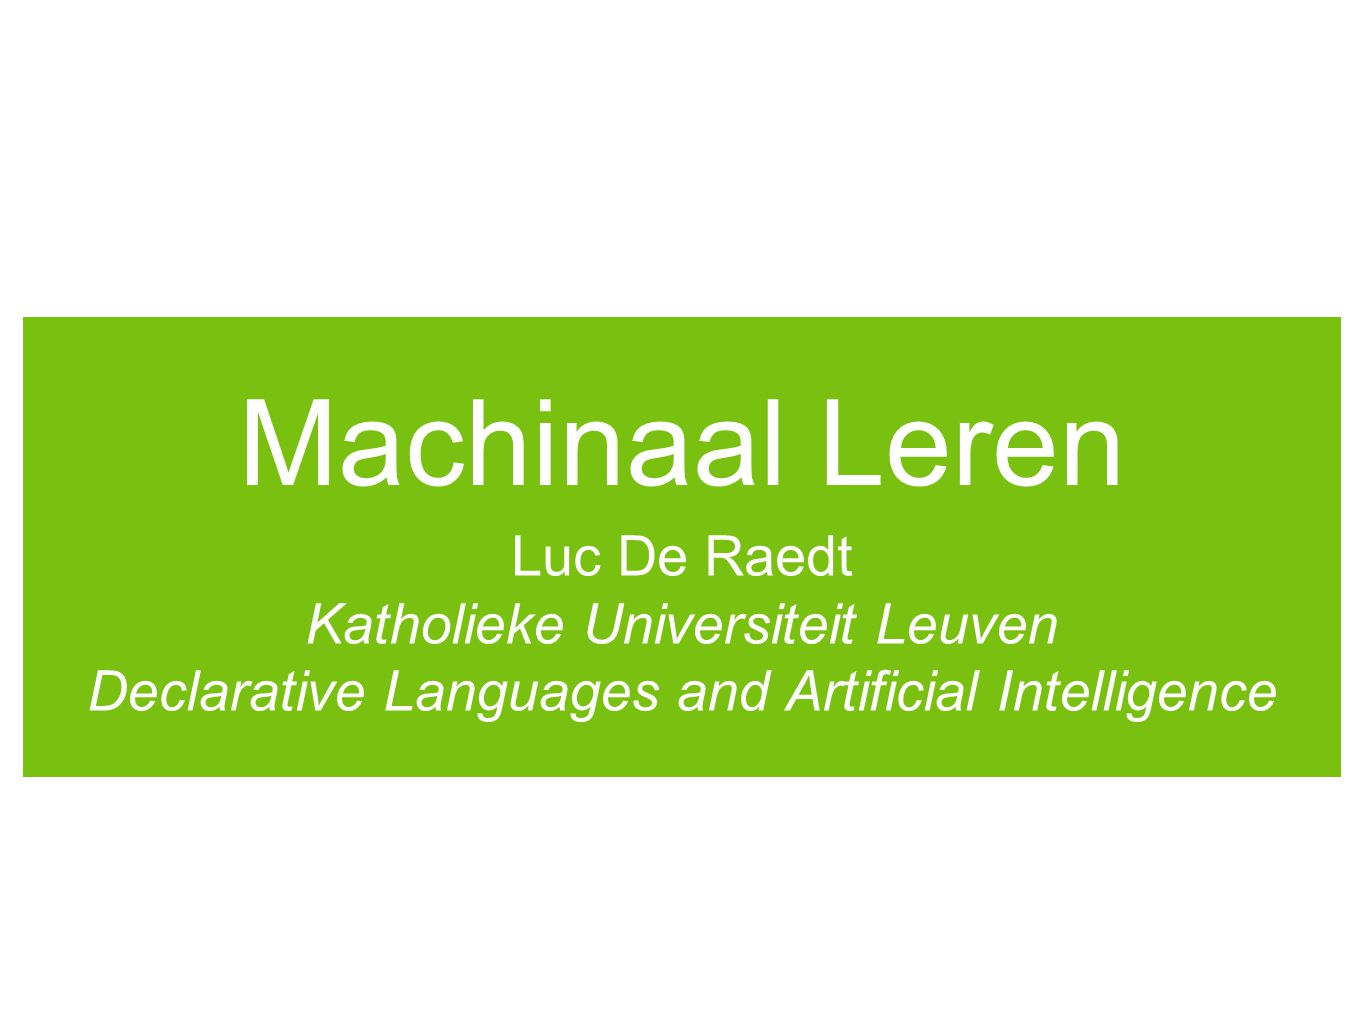 Machinaal Leren Luc De Raedt Katholieke Universiteit Leuven Declarative Languages and Artificial Intelligence